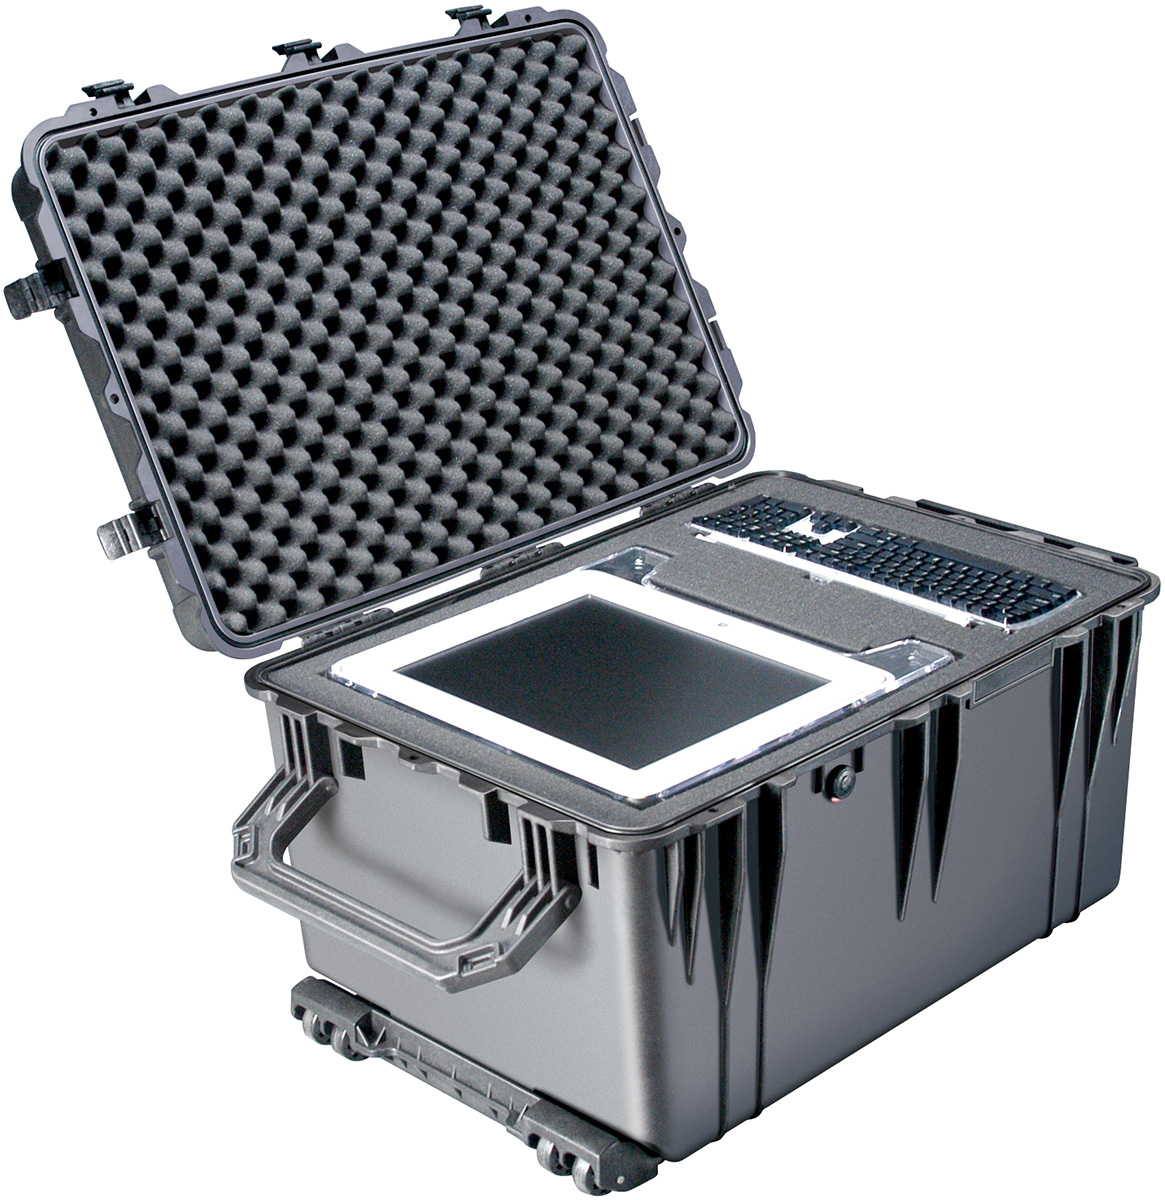 pelican peli products 1660 large case electronics transport box